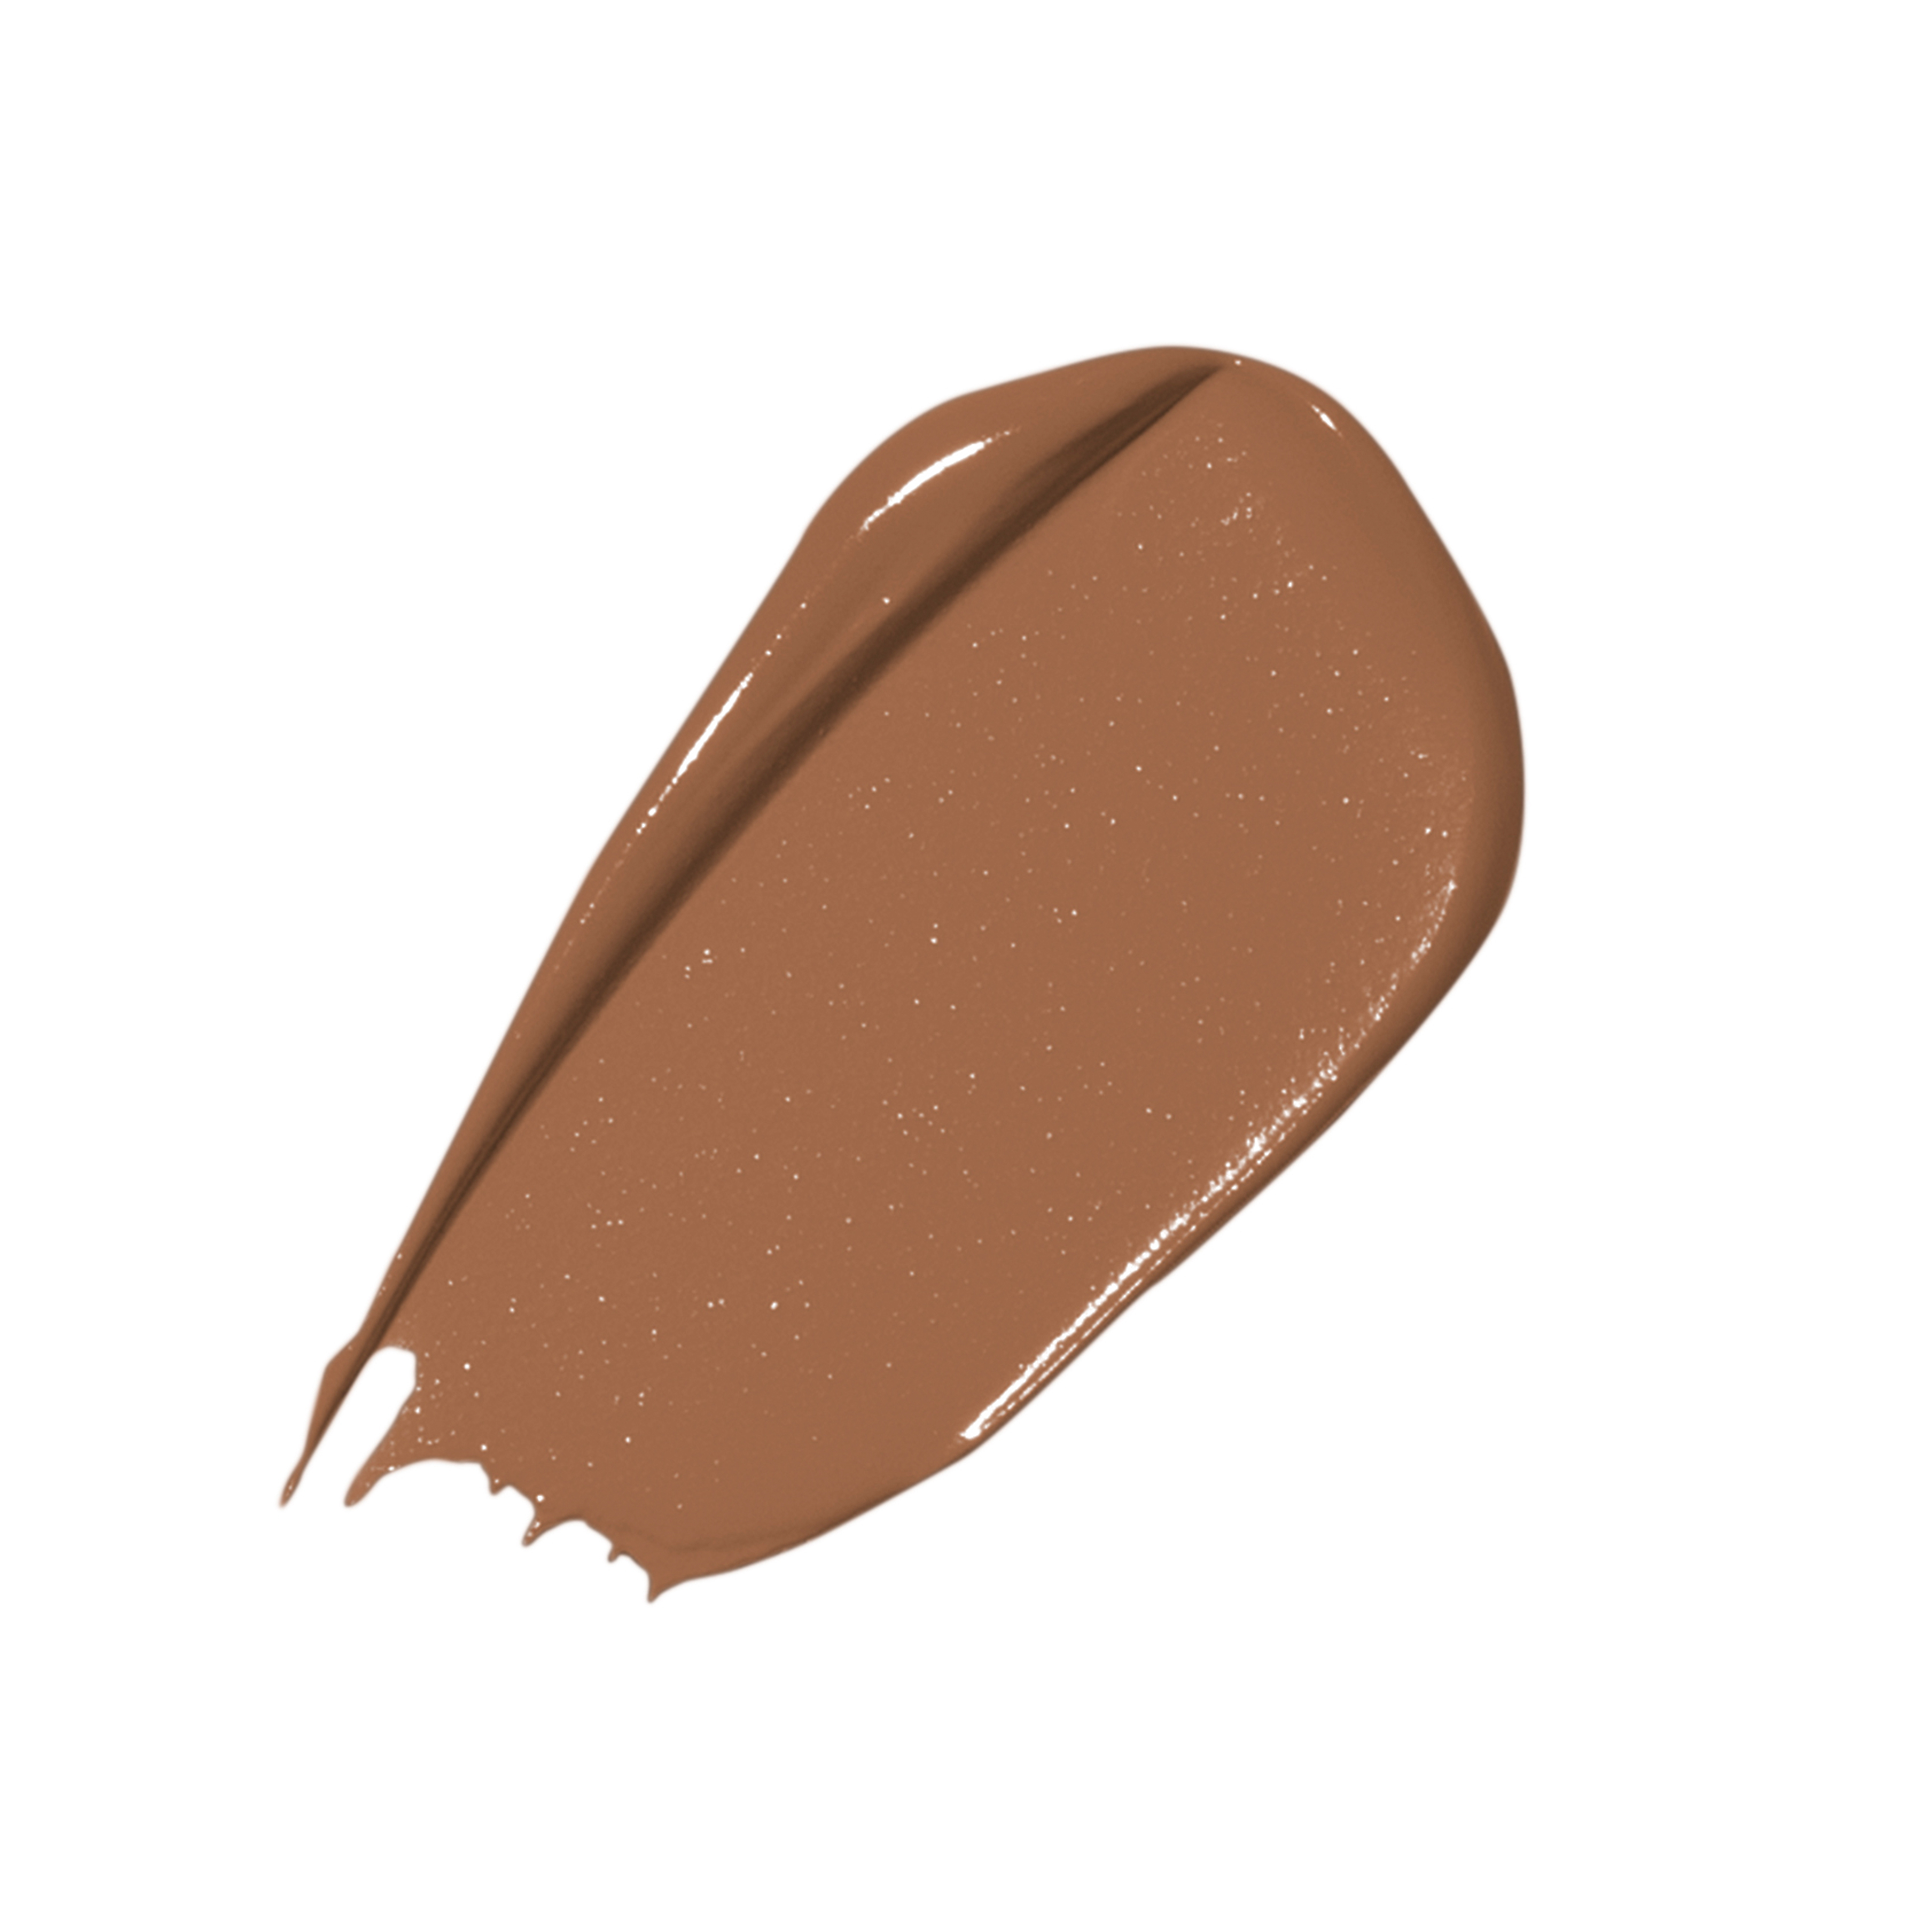 Ordinary_Colours_Concealer_Swatch_3.2N_3b6a_thumbnail